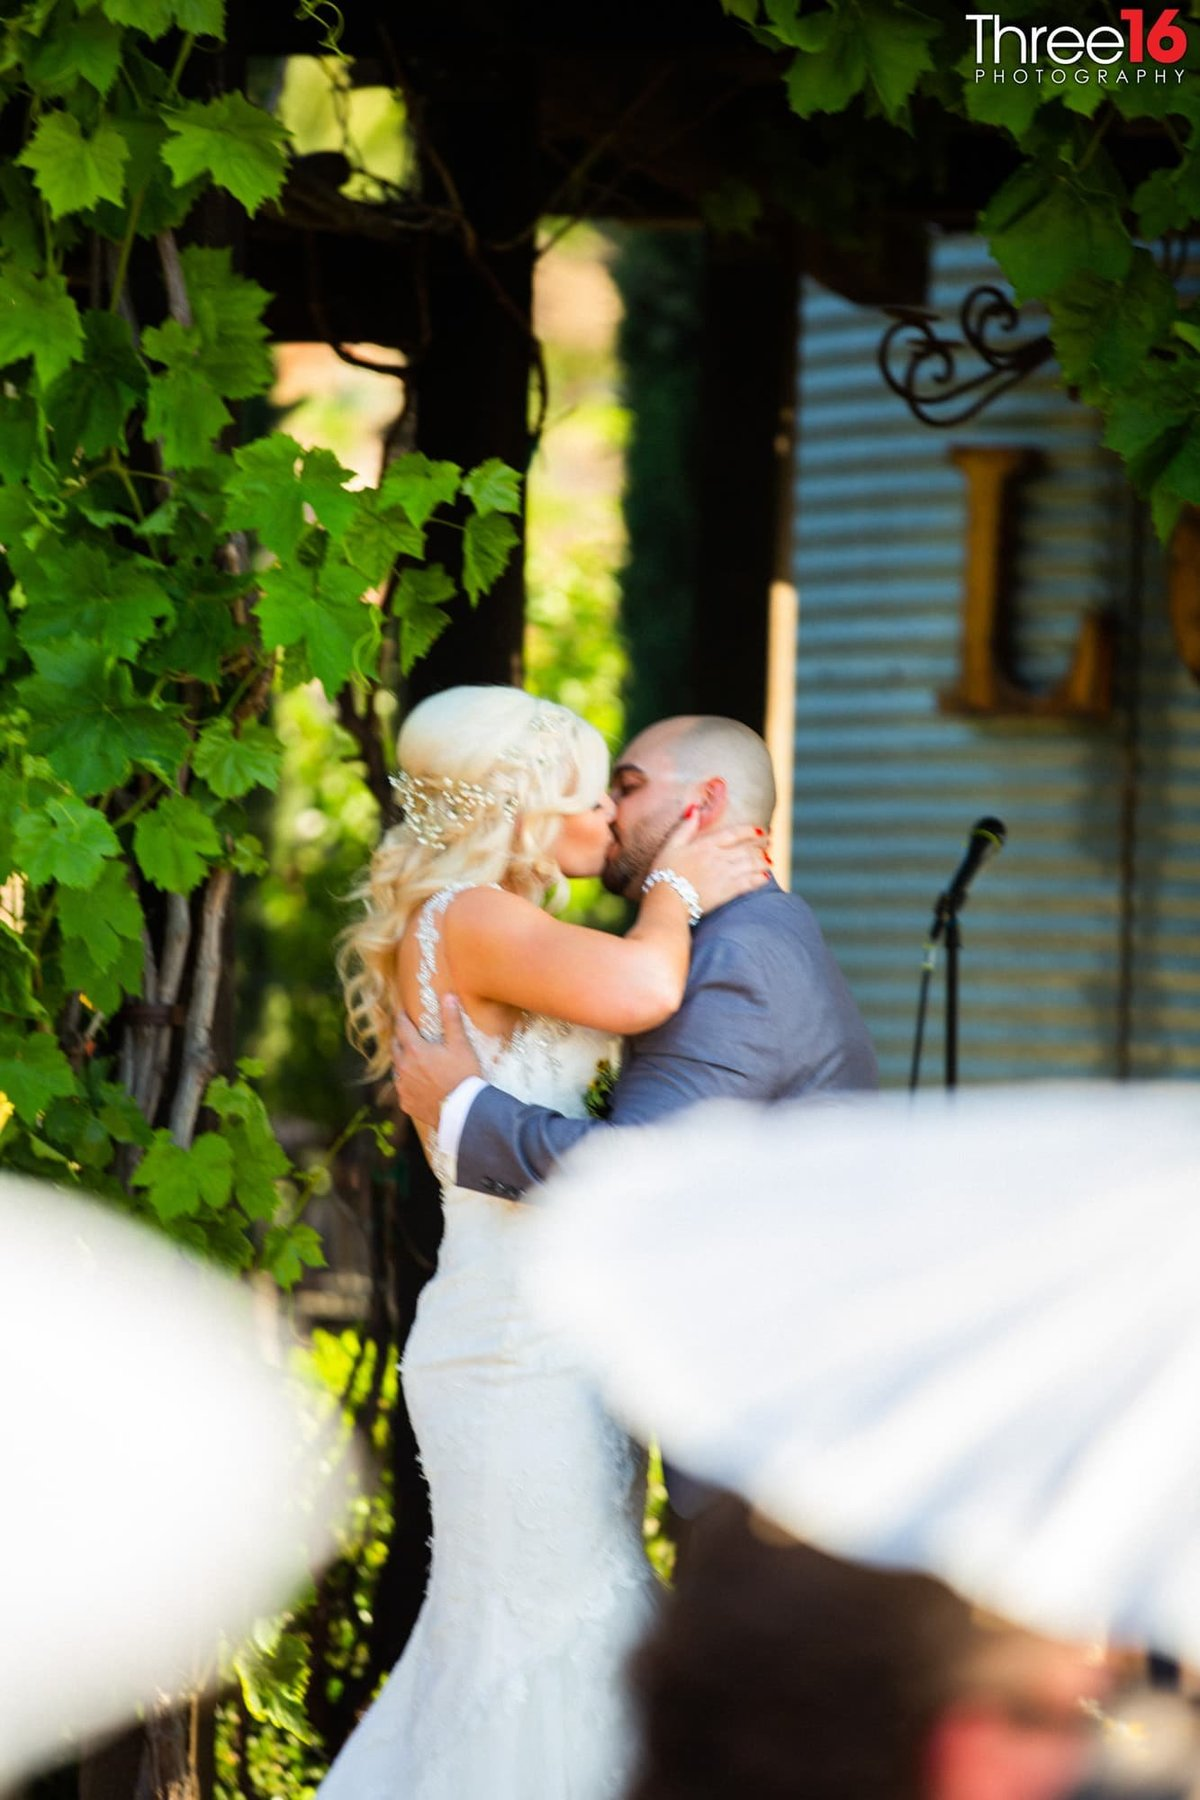 Peltzer Winery Wedding Venue Photography Temecula California First kiss